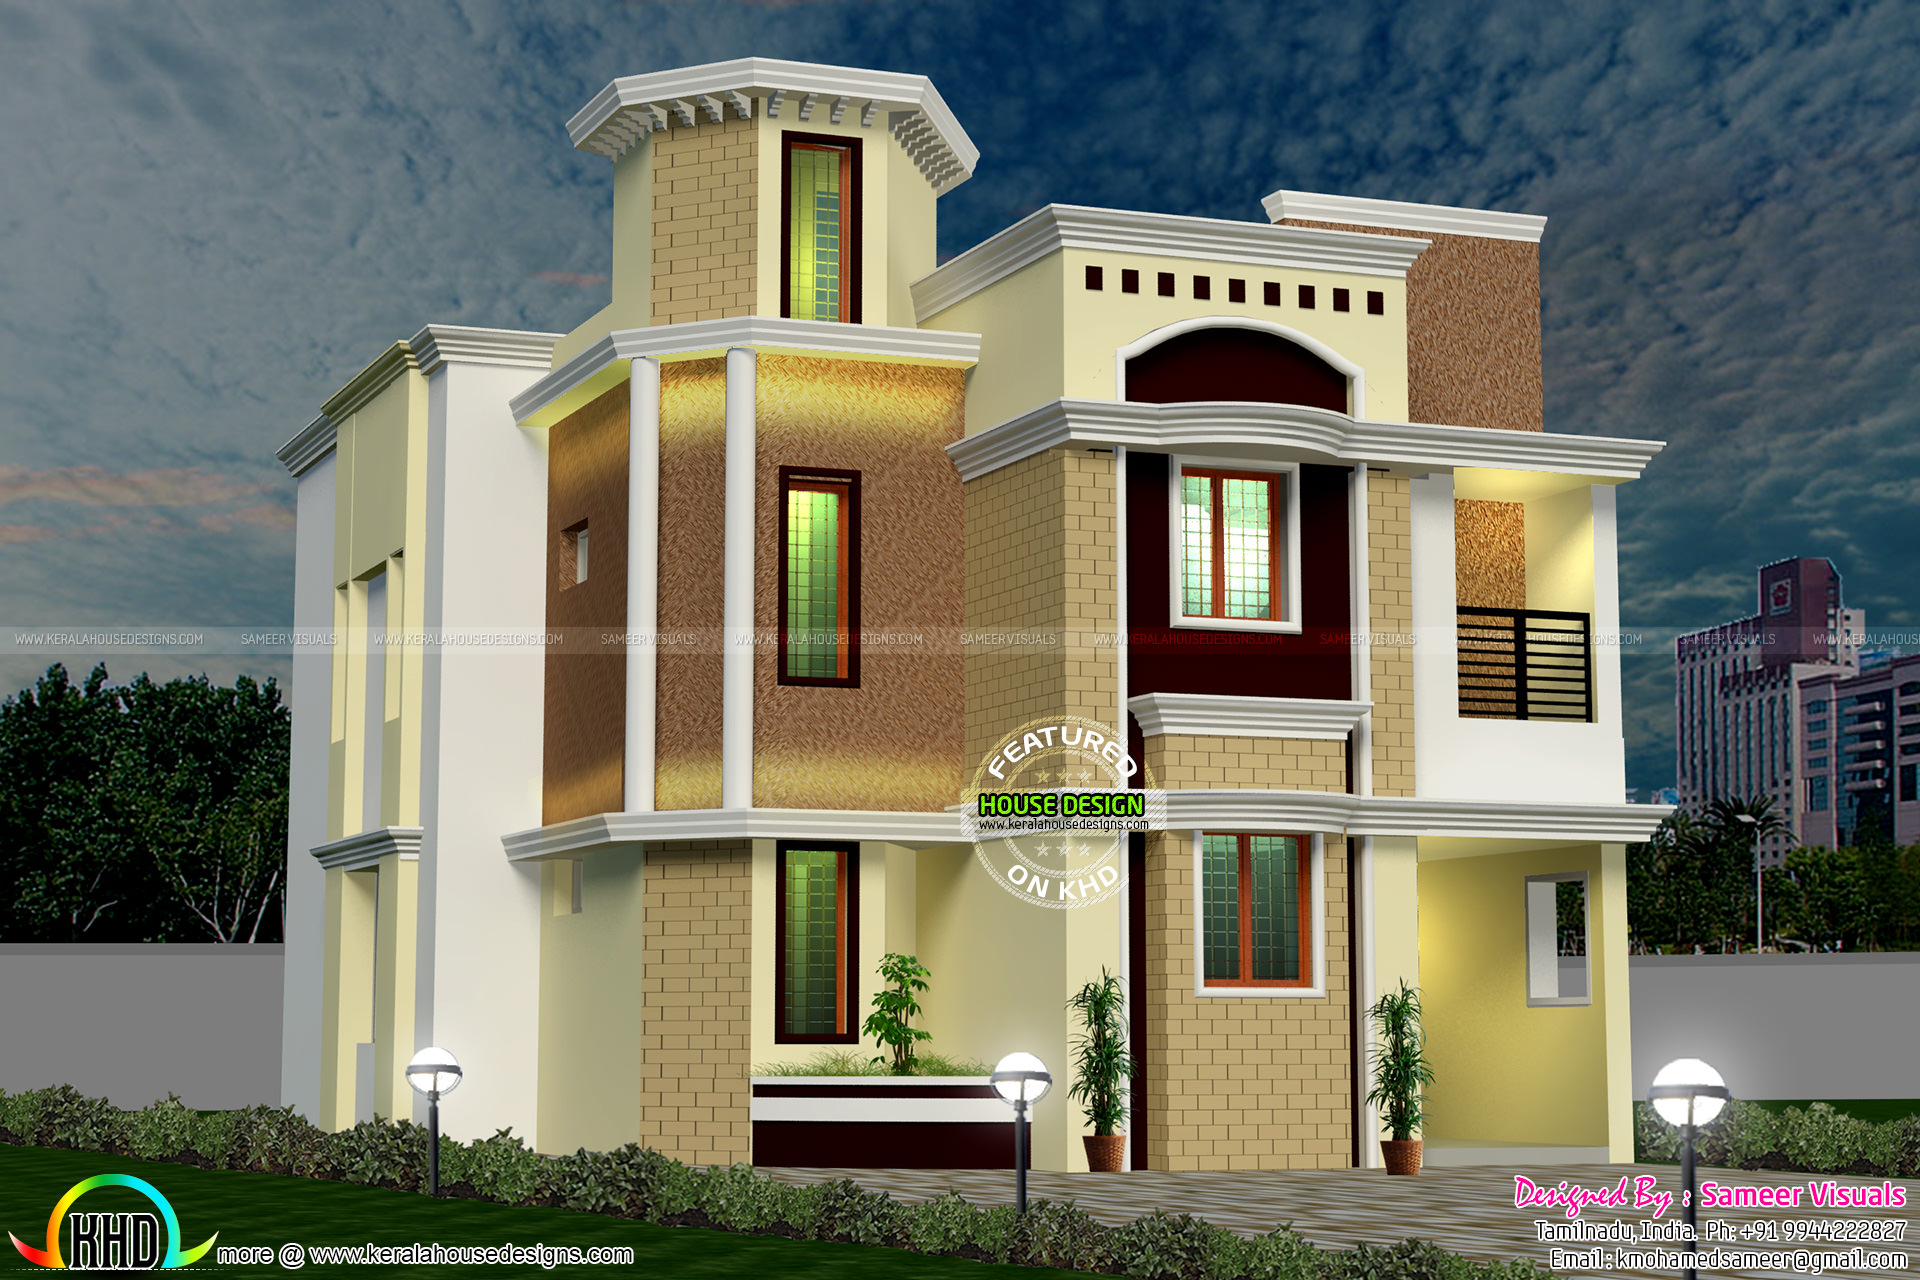 South indian modern home kerala home design and floor plans Indian modern house